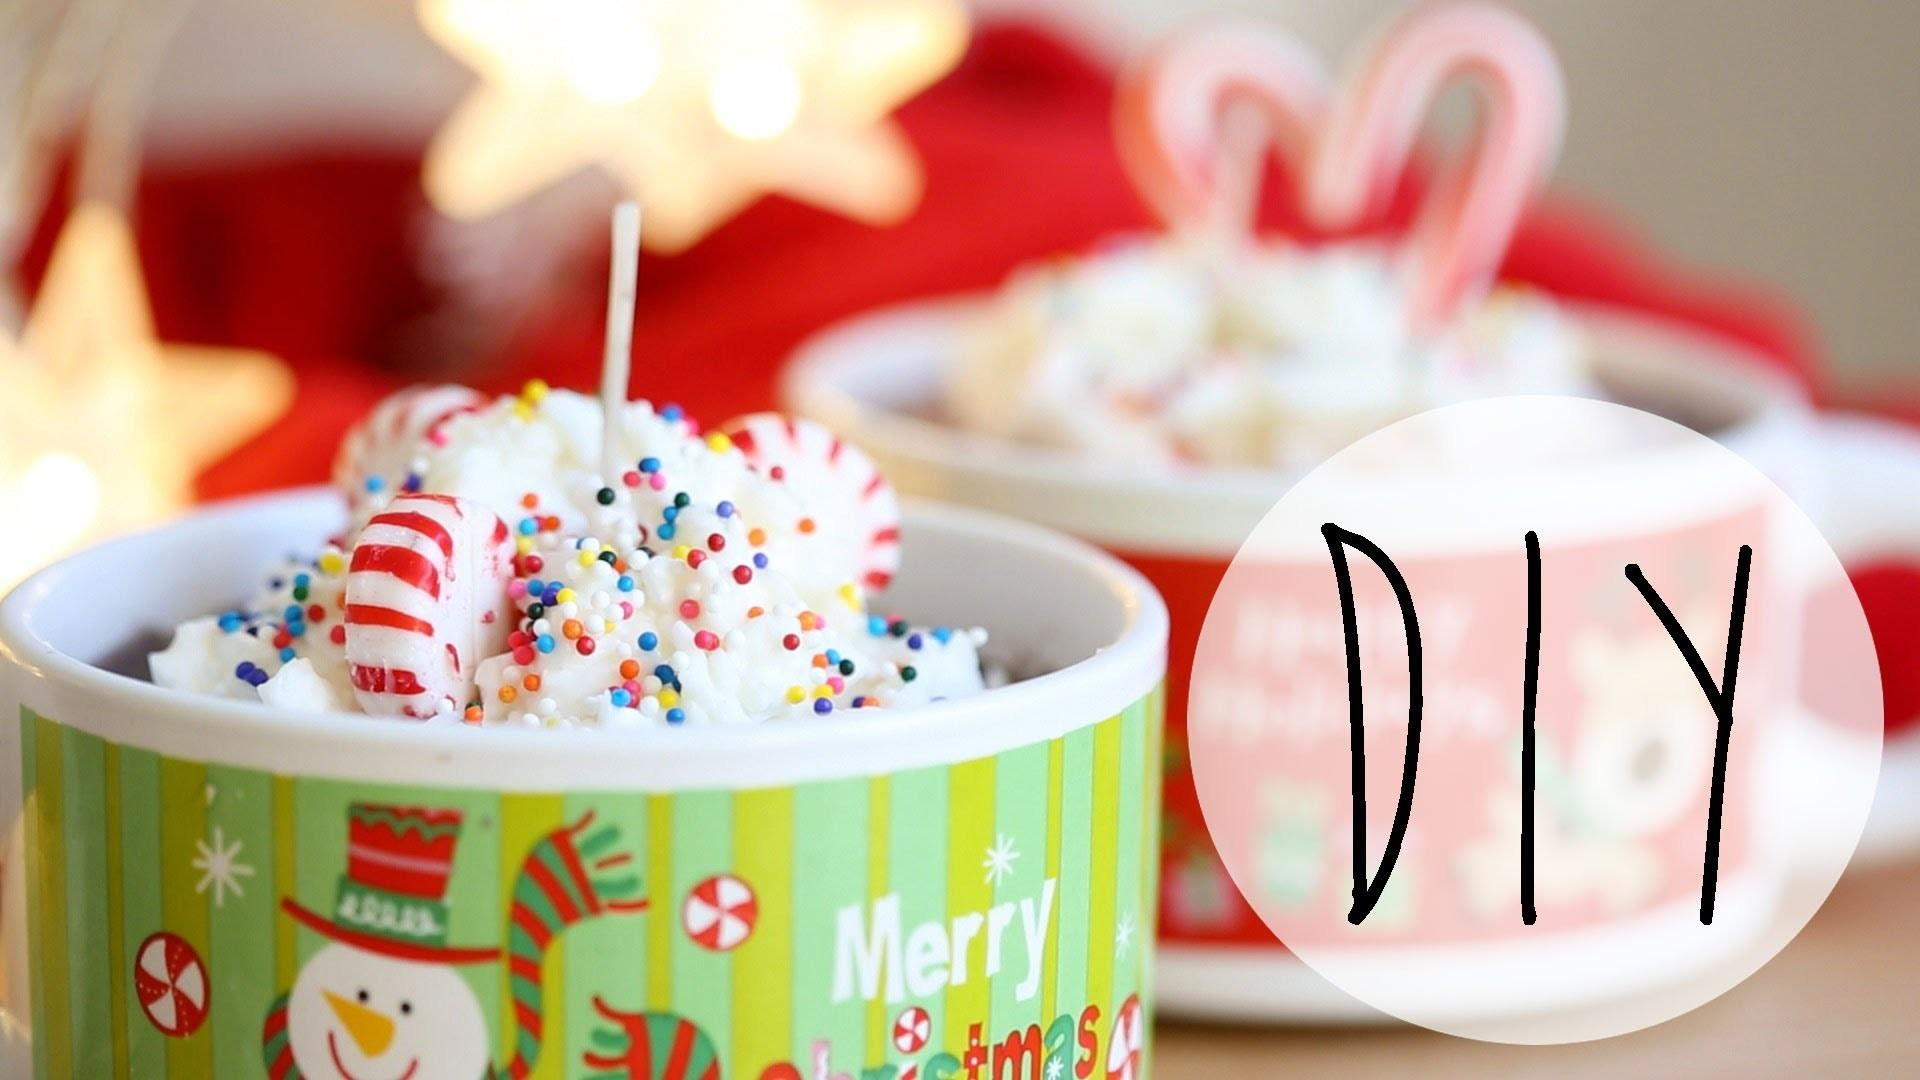 Diy Candle Making Hot Cocoa Candles Holiday Gift Ideas